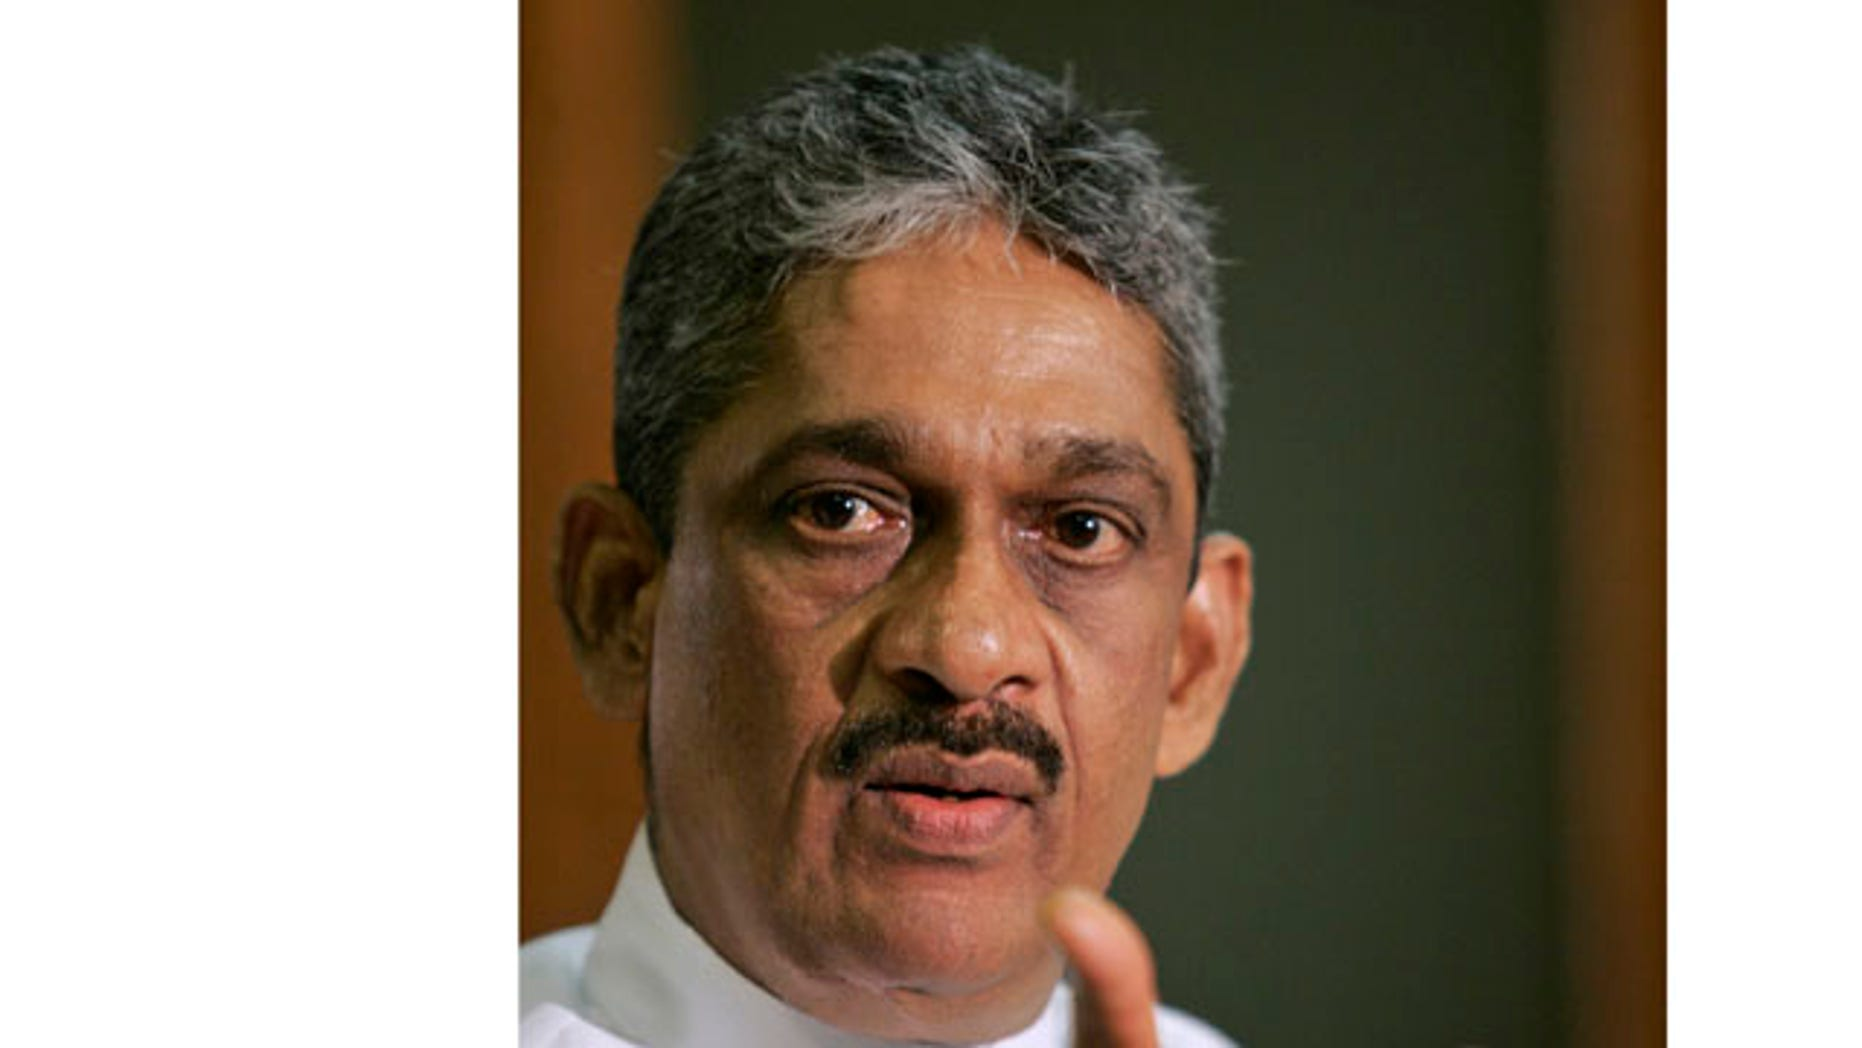 In this Sept. 8, 2010 file photo, Sri Lankan lawmaker and former military chief Sarath Fonseka addresses the media in Colombo, Sri Lanka.